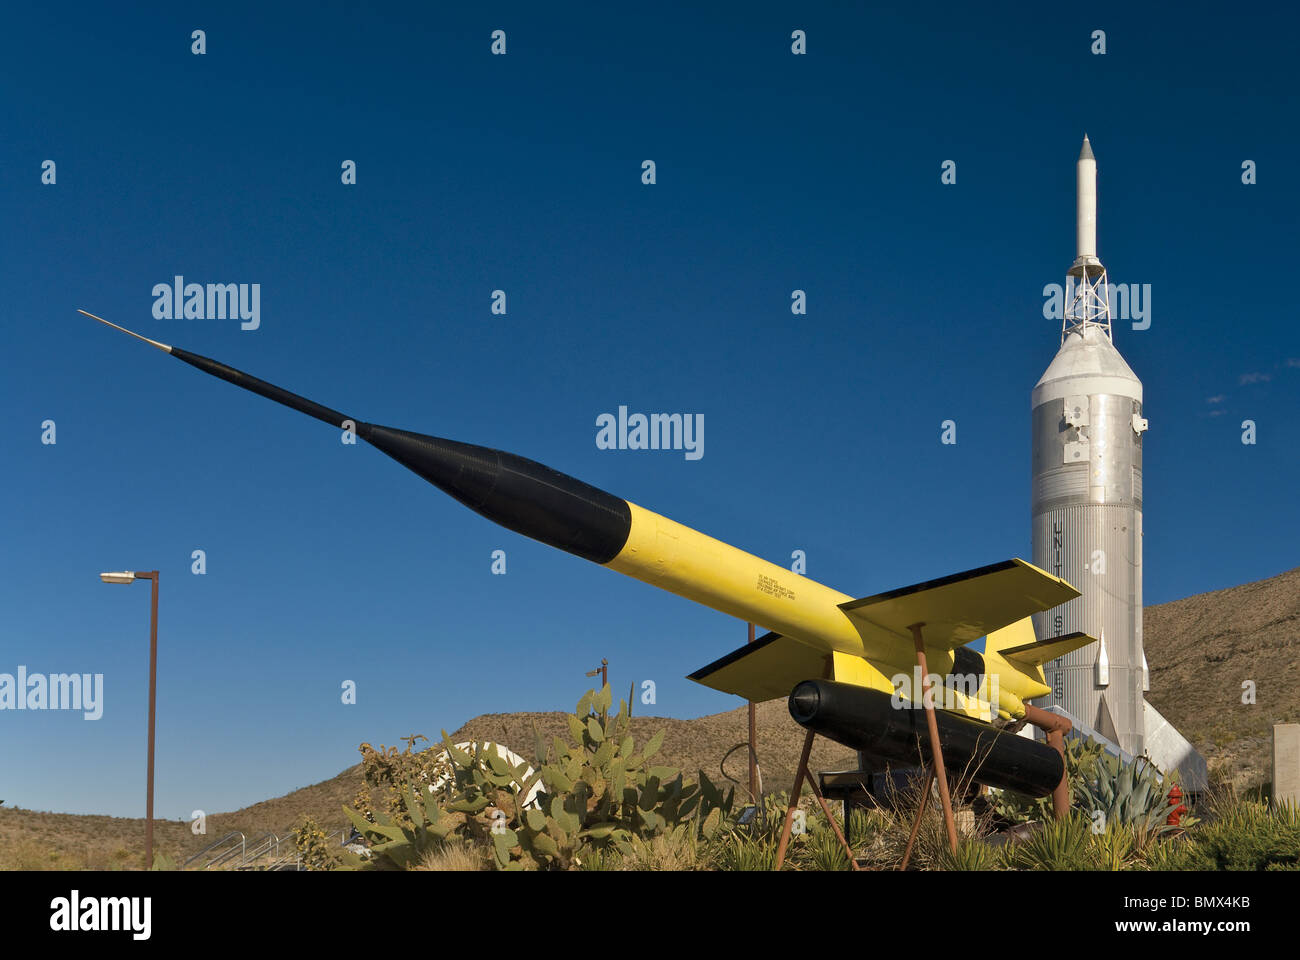 Lockheed X-7A and Little Joe II rockets at Museum of Space History in Alamogordo, New Mexico, USA - Stock Image